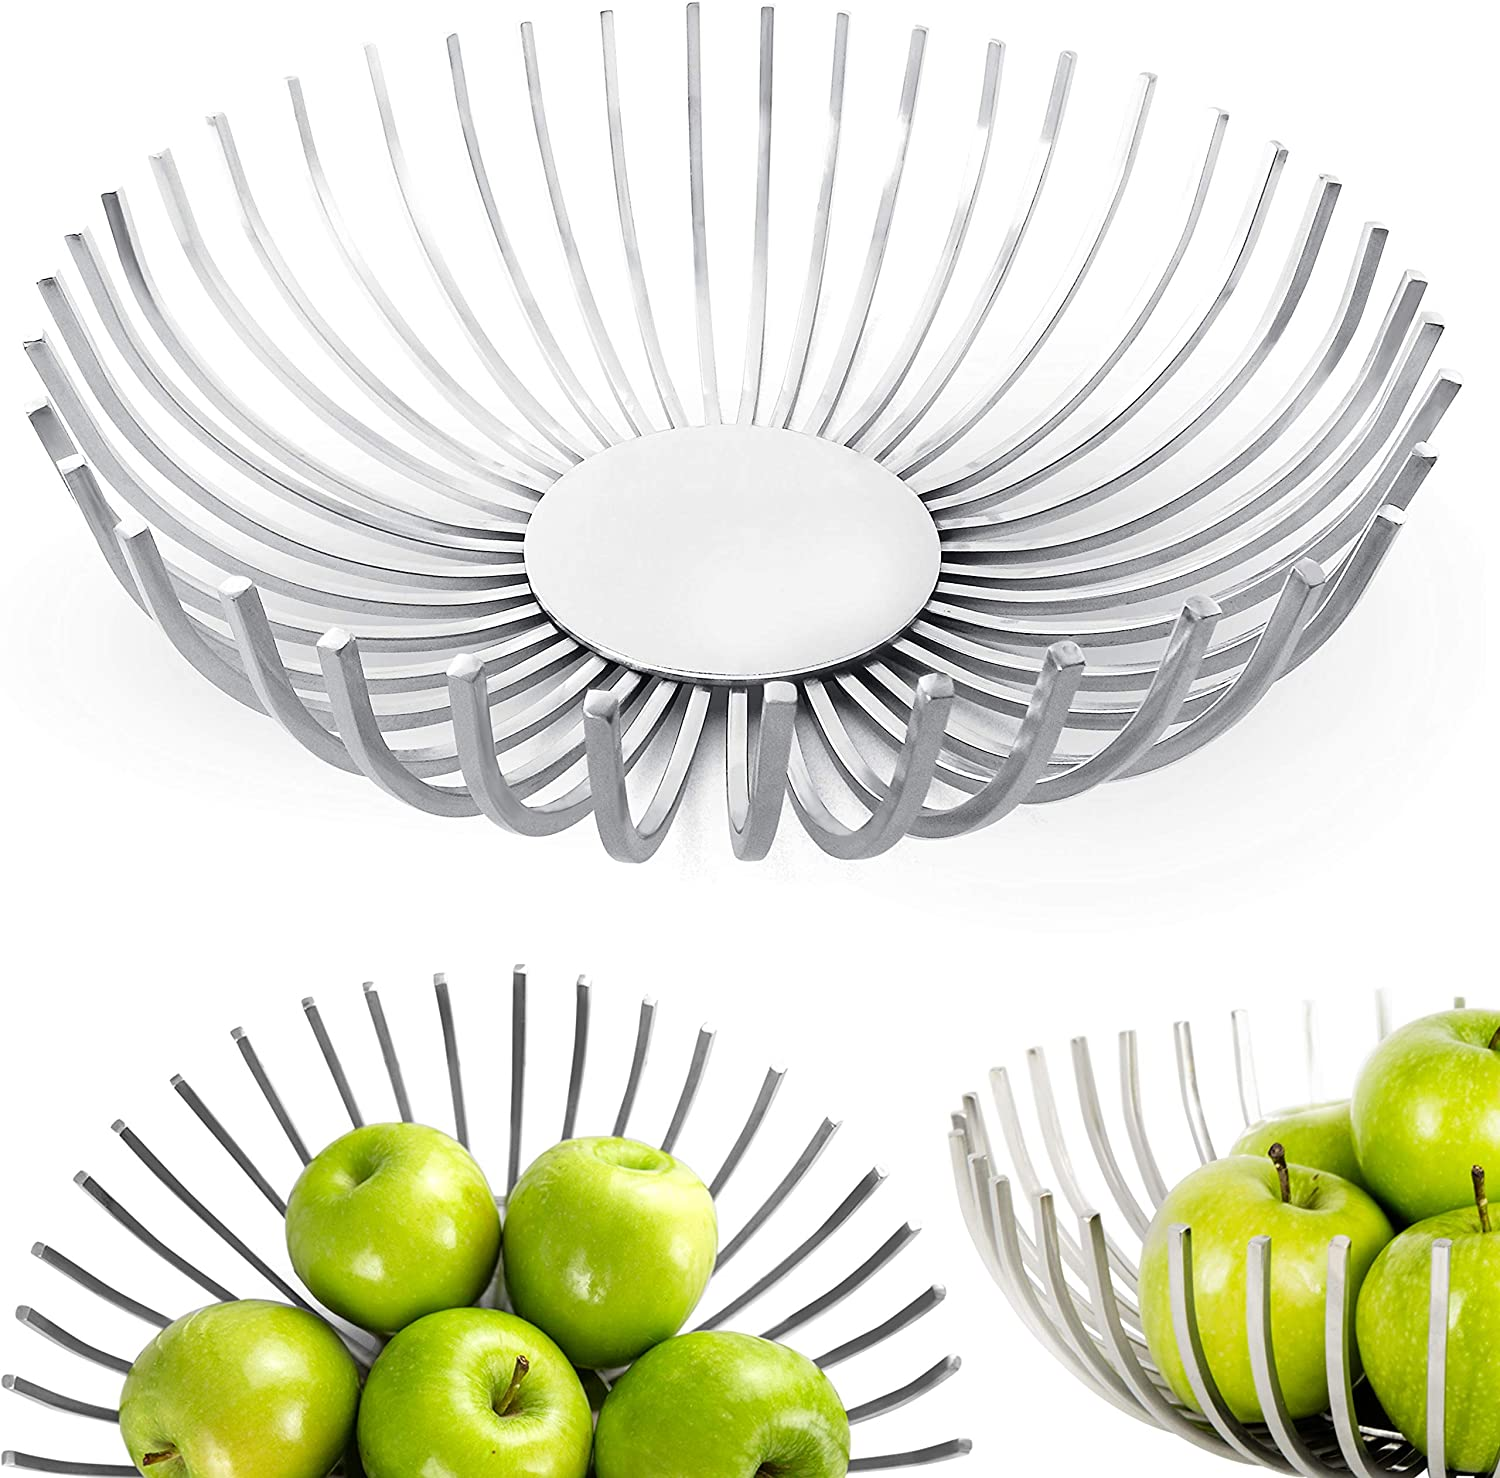 """RESONARA Decorative Fruit Bowl 10"""", Stainless Steel Fruit Basket for Kitchen Counter, Stylish Centerpiece Bowl for Dining Room Table, Artisan Home Decoration for Living Room, Modern Coffee Table Décor"""